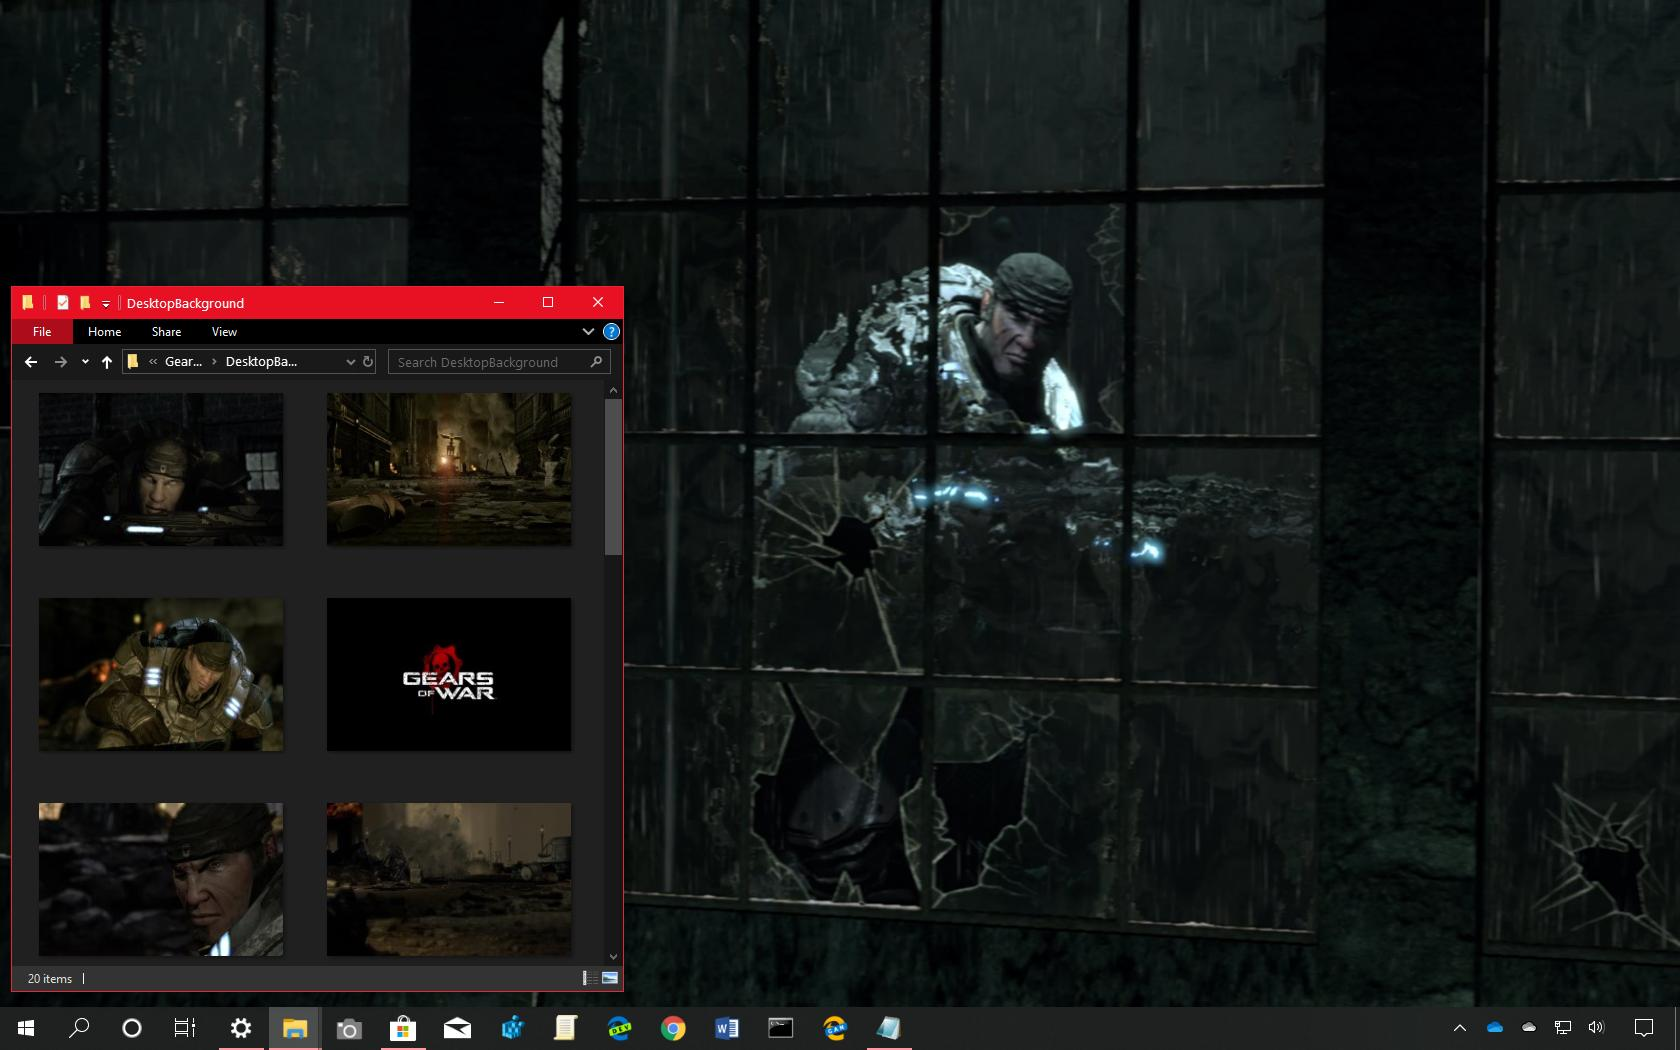 Gears of Wars Mad World theme for Windows 10